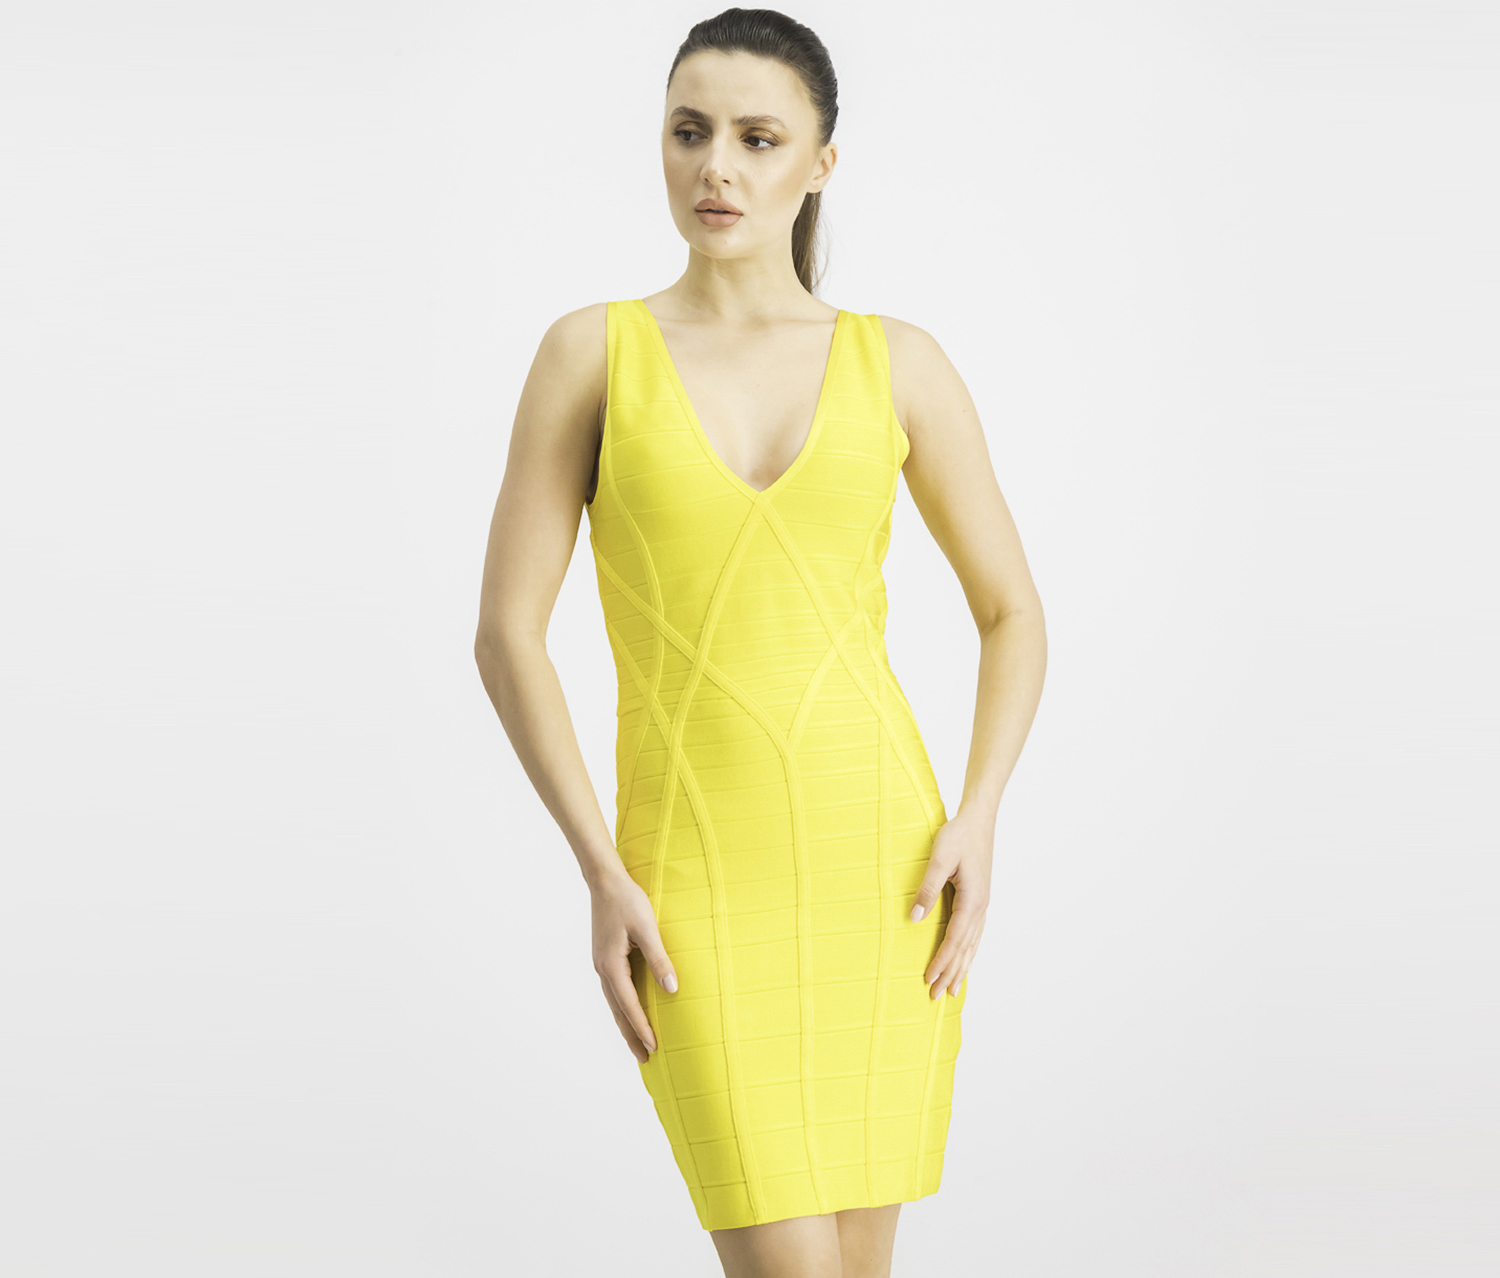 Women's V-Neck Bodycon Dress, Lemon